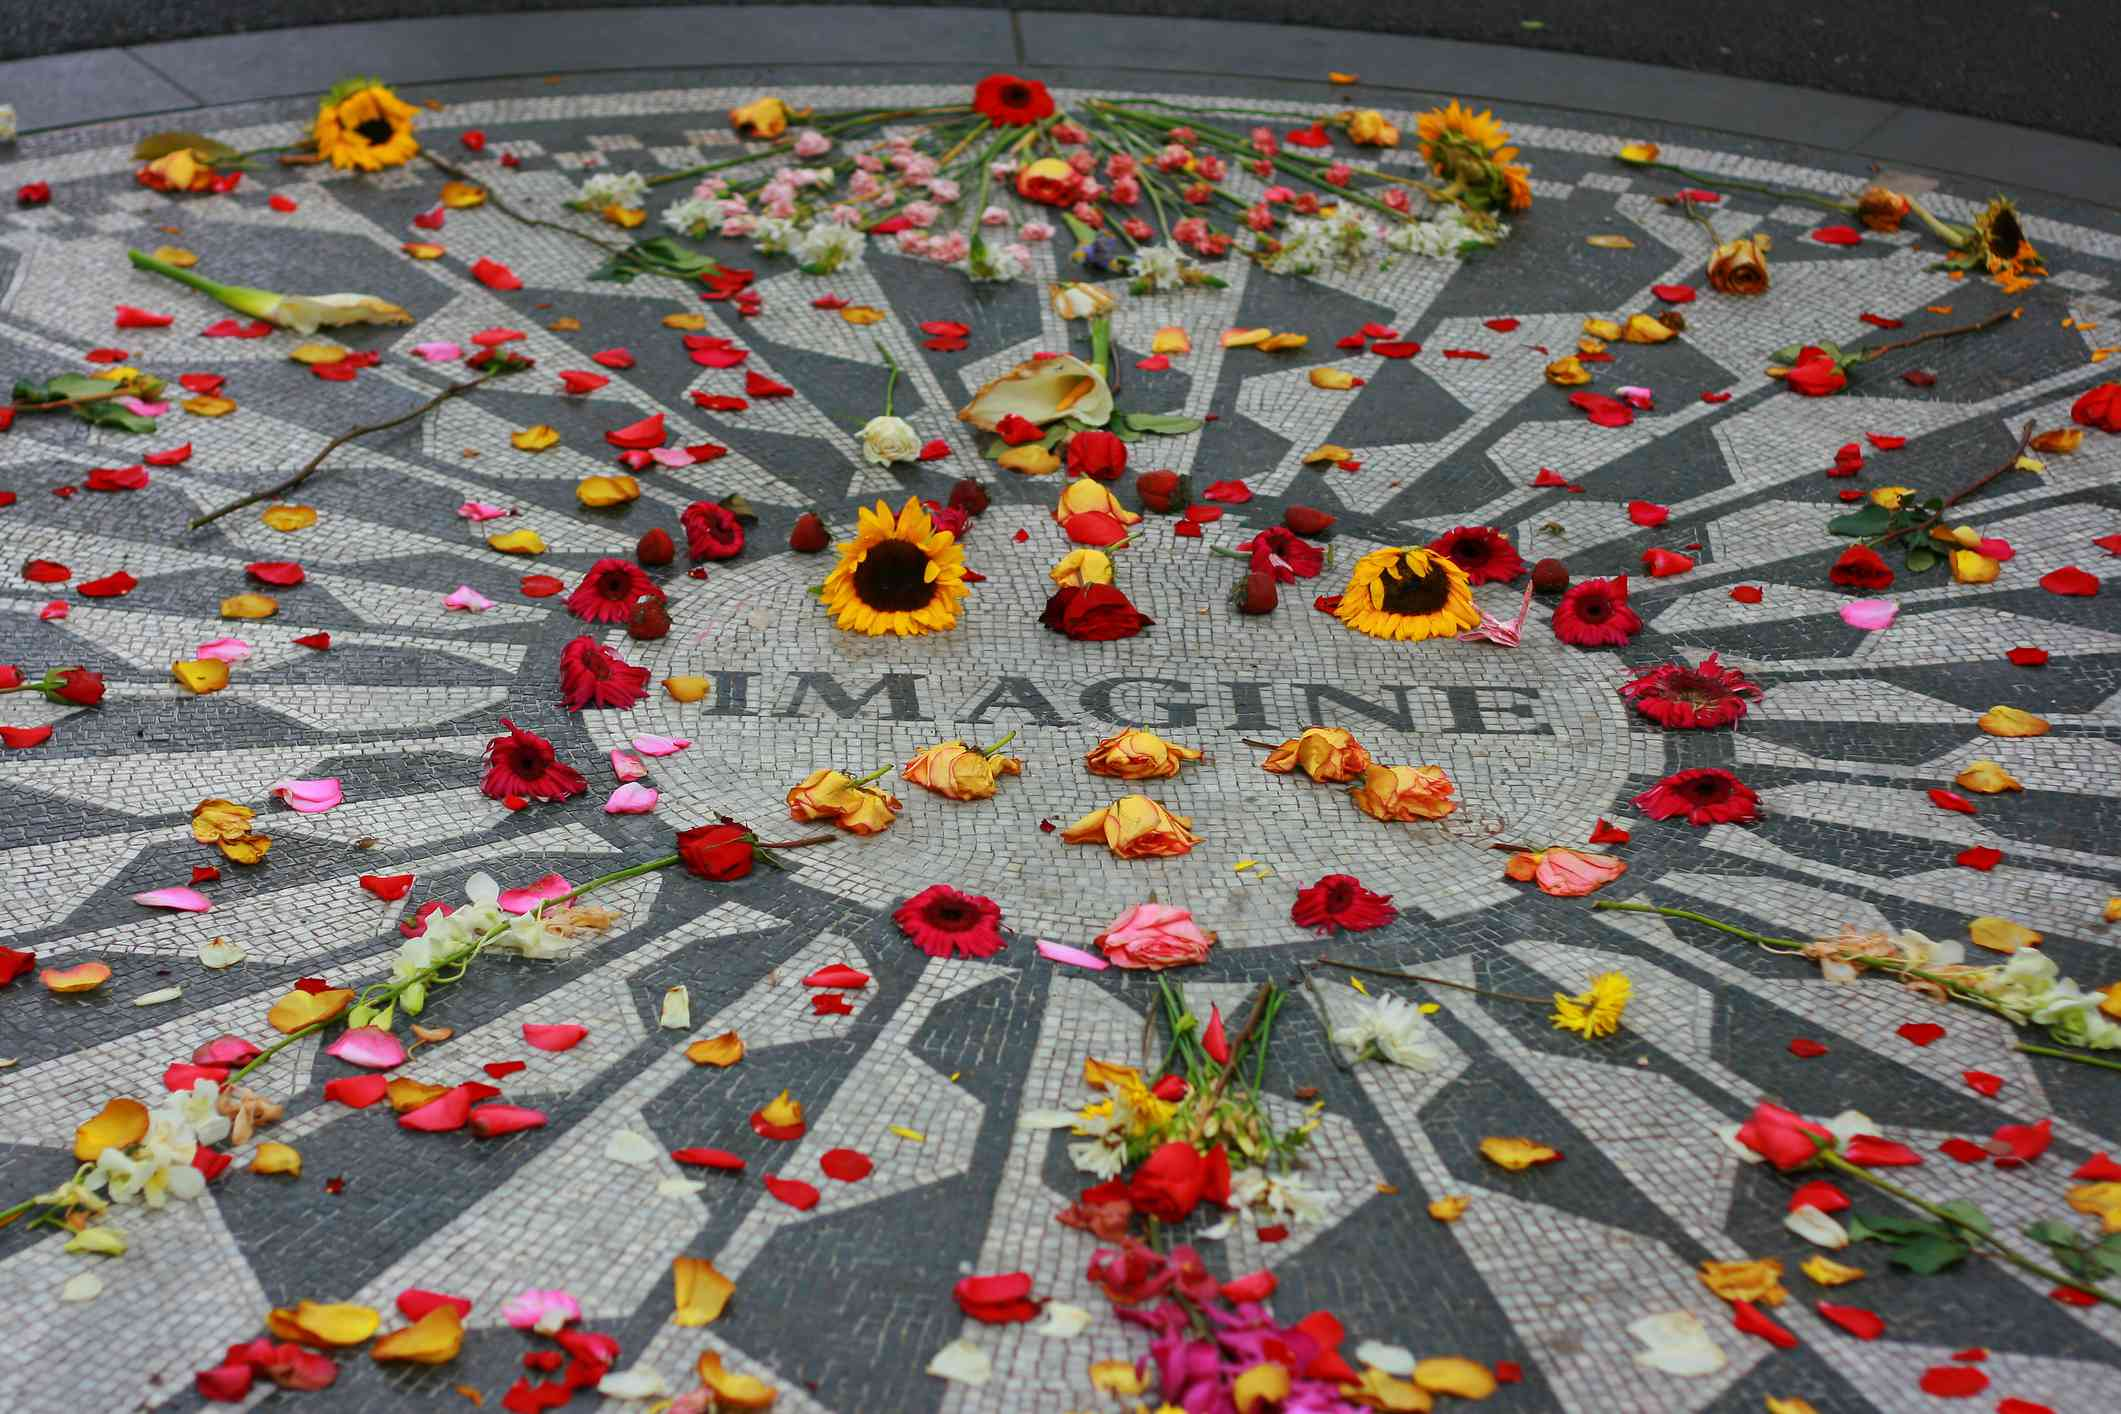 Strawberry fields John Lennon memorial tribute in central park, Manhattan with flowers spread around it